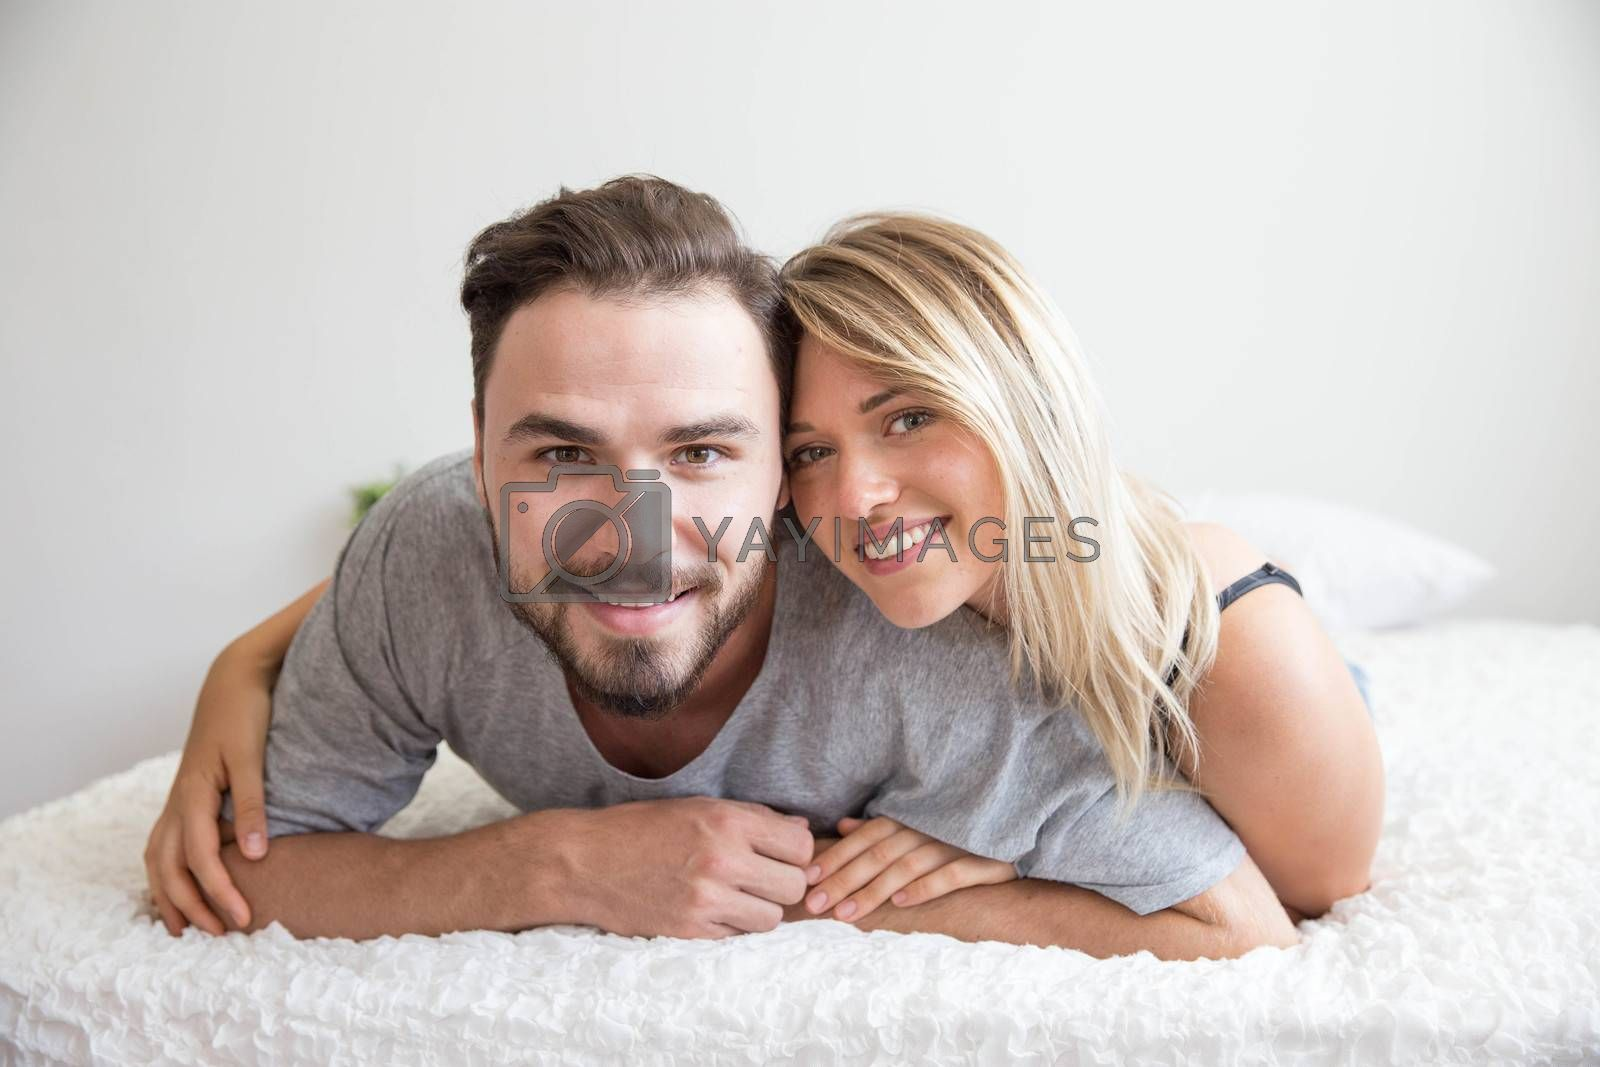 A couple in bed look at camera and smile with happy lover